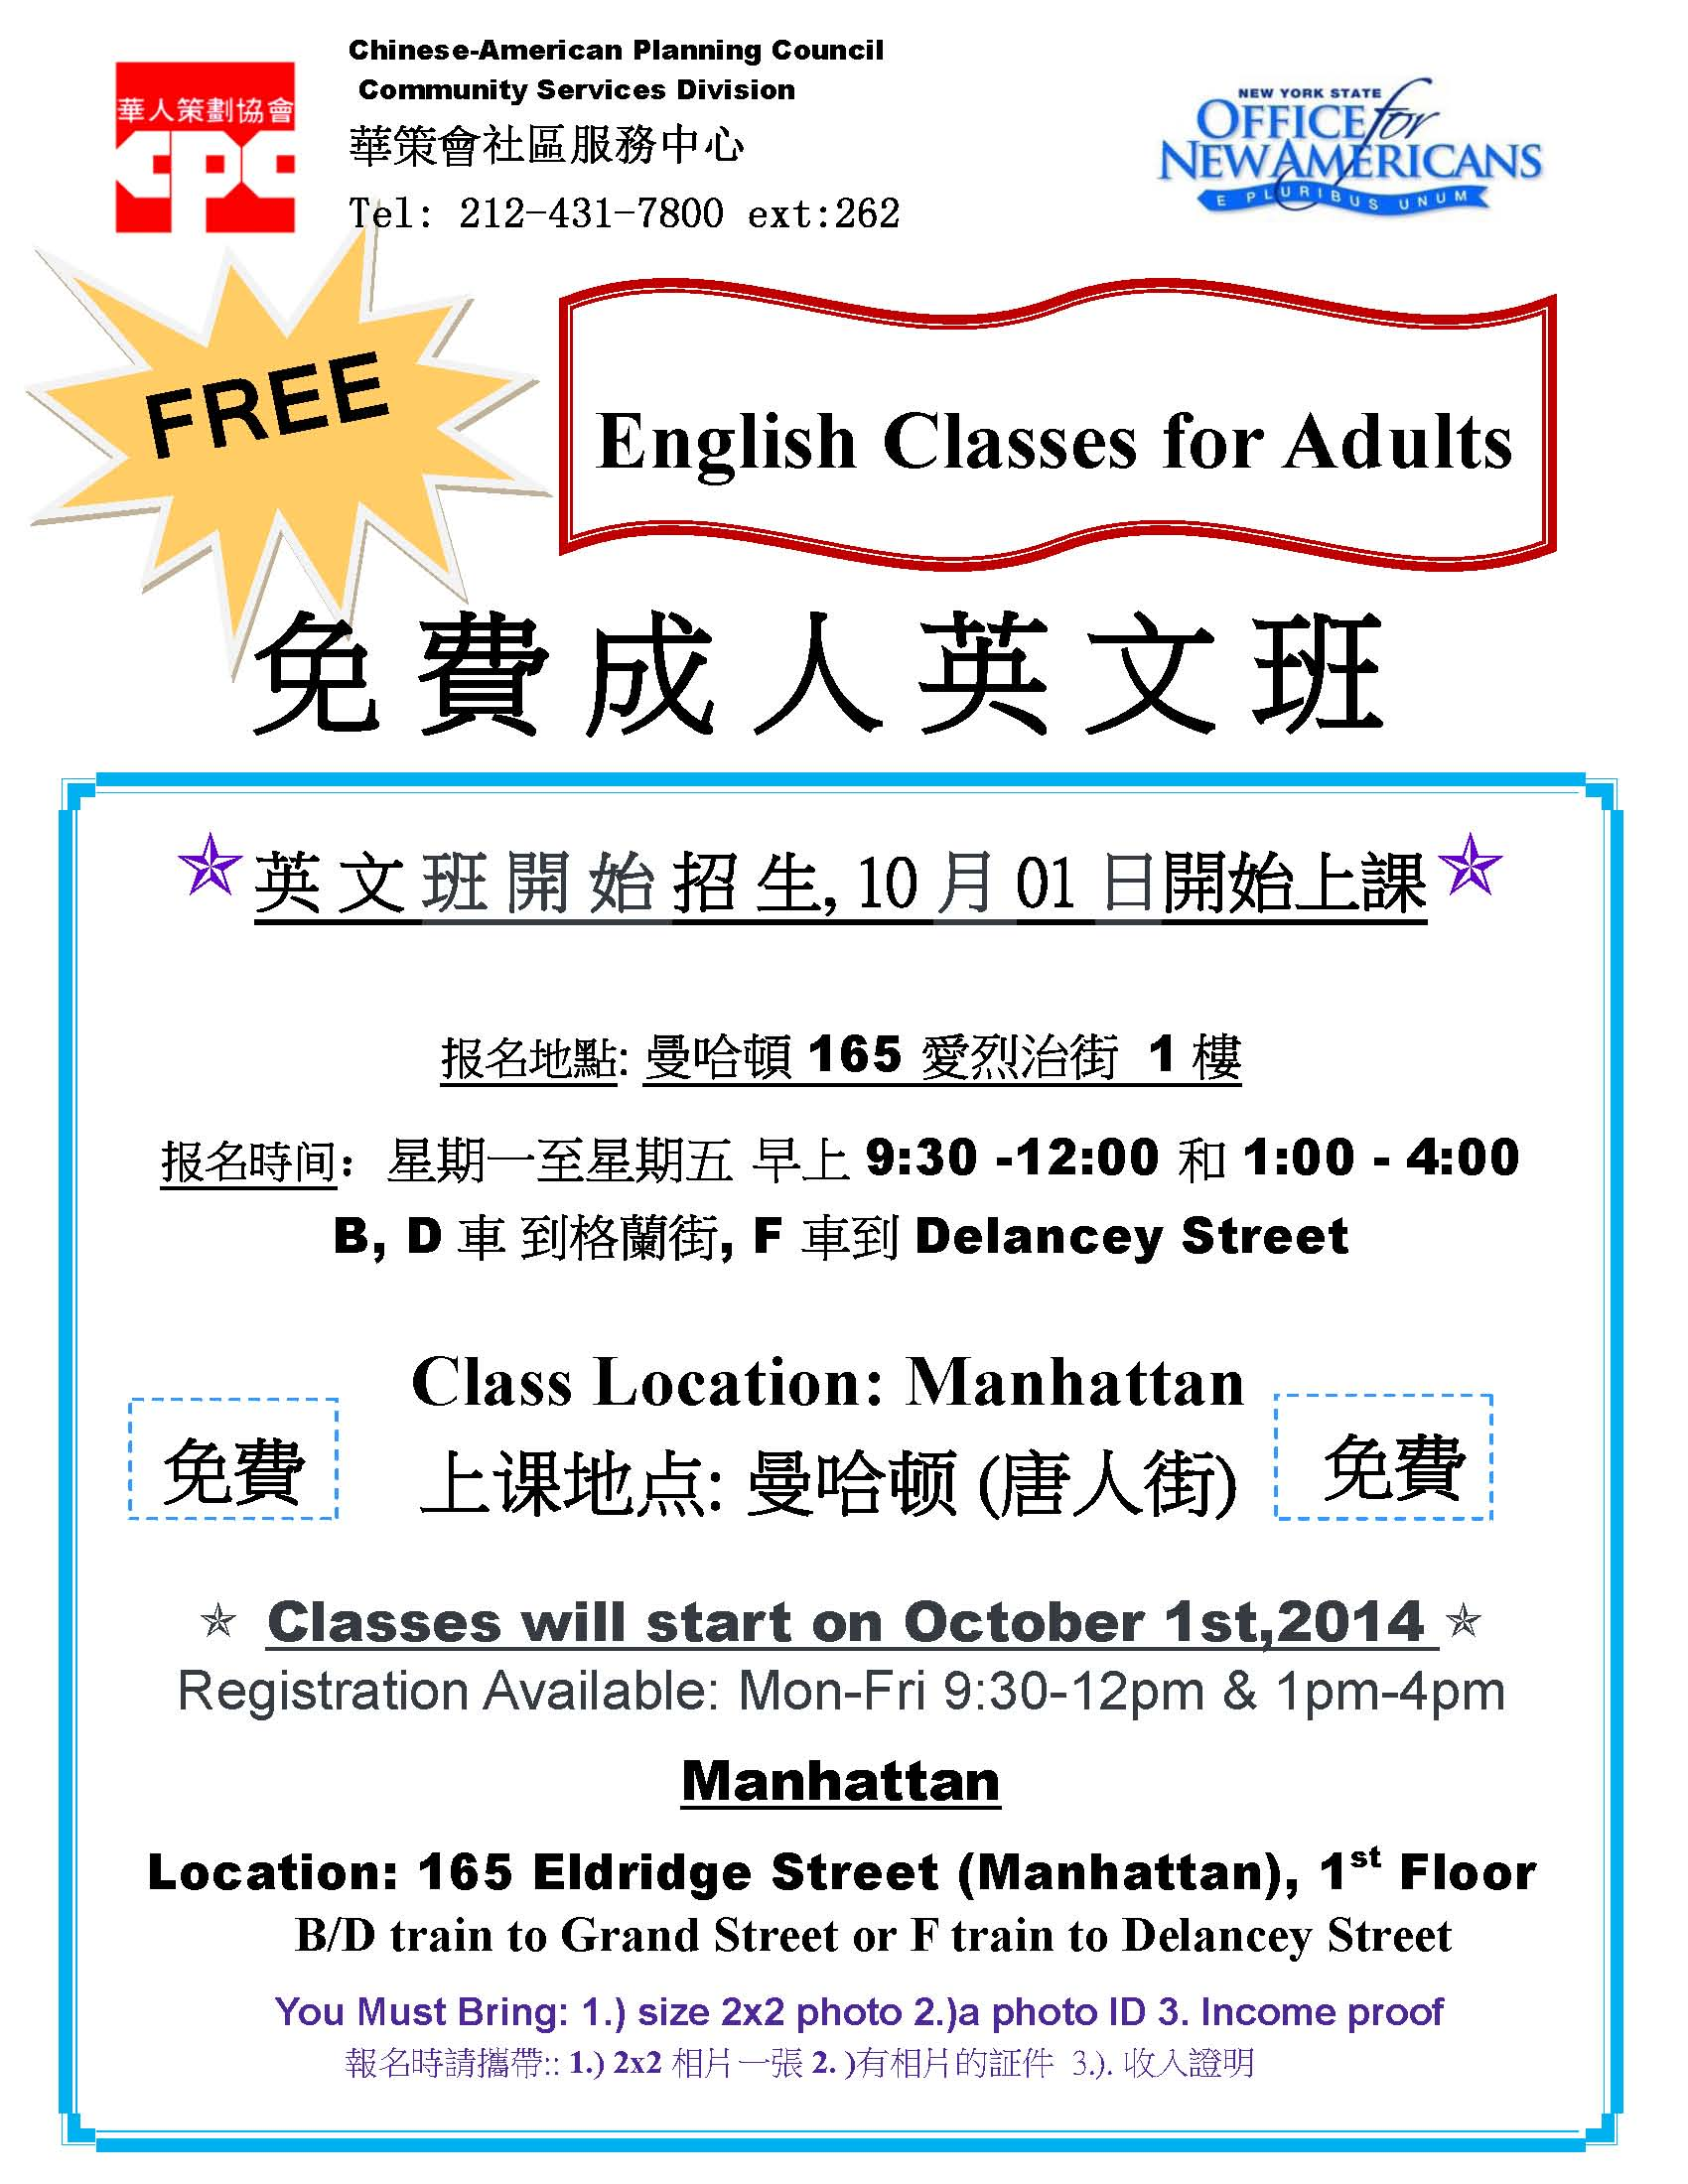 Free Adult ESL Classes to be offered thanks to NYS ONA